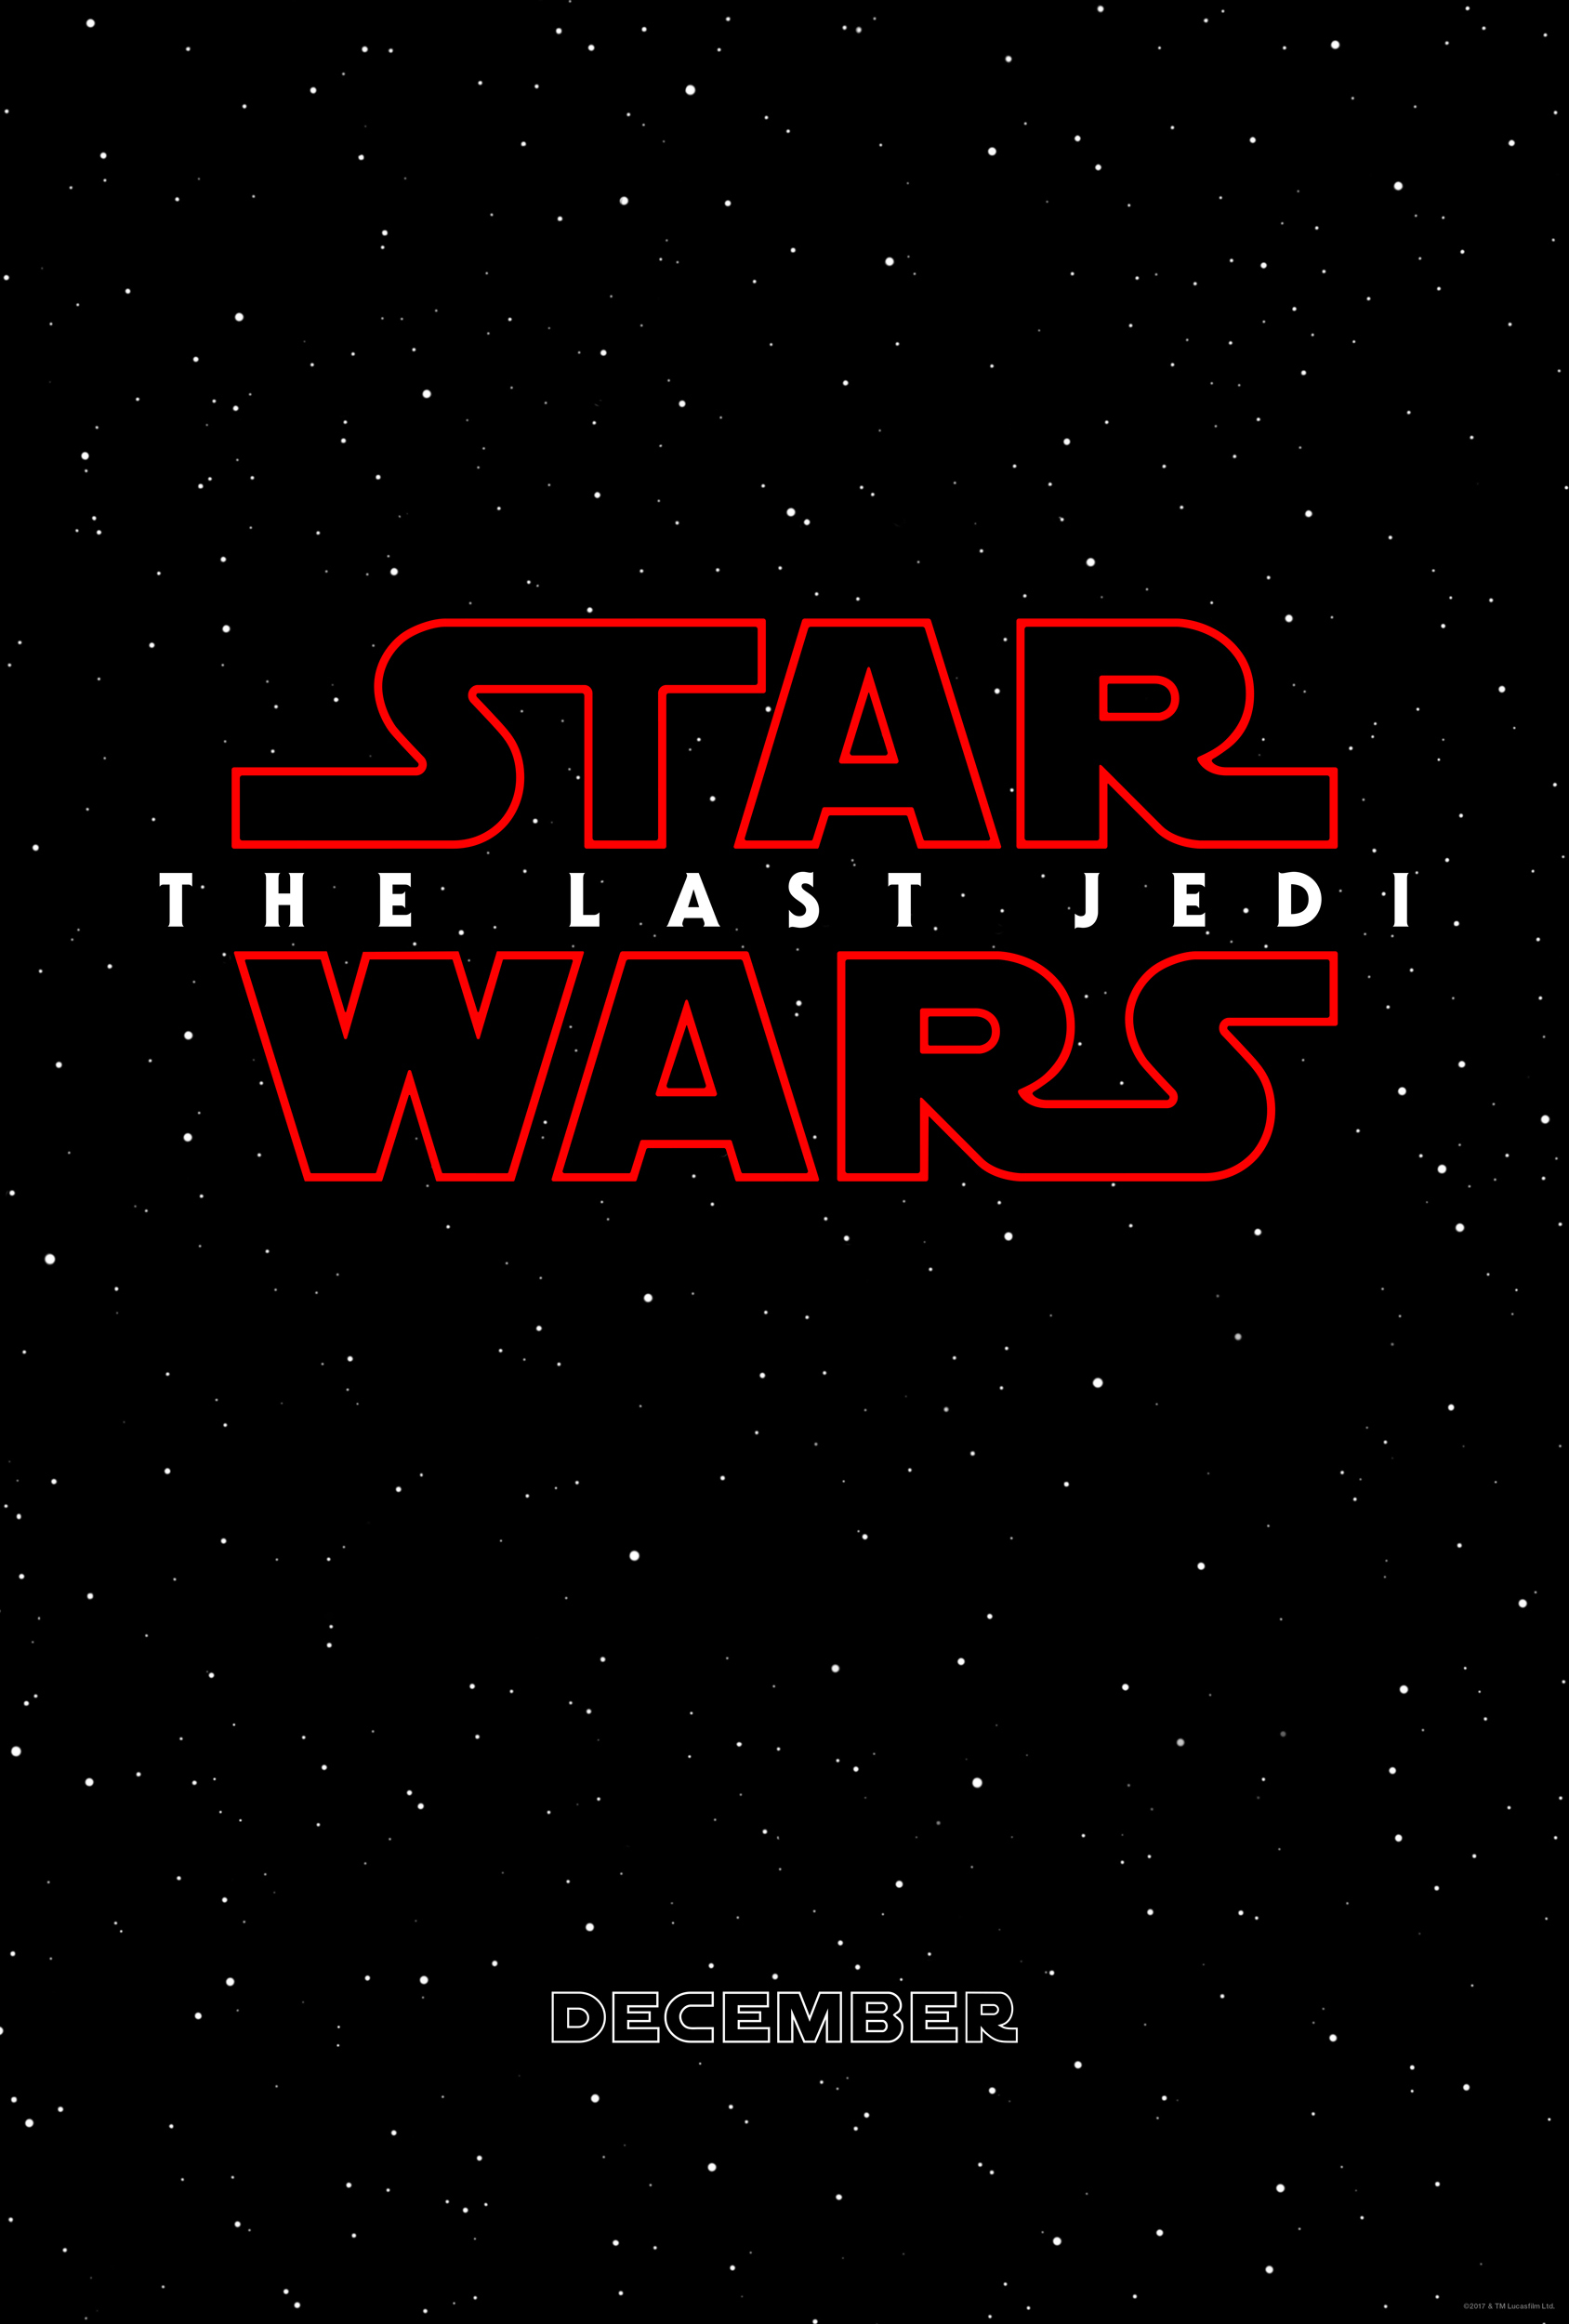 The title for Star Wars Episode Eight has been revealed